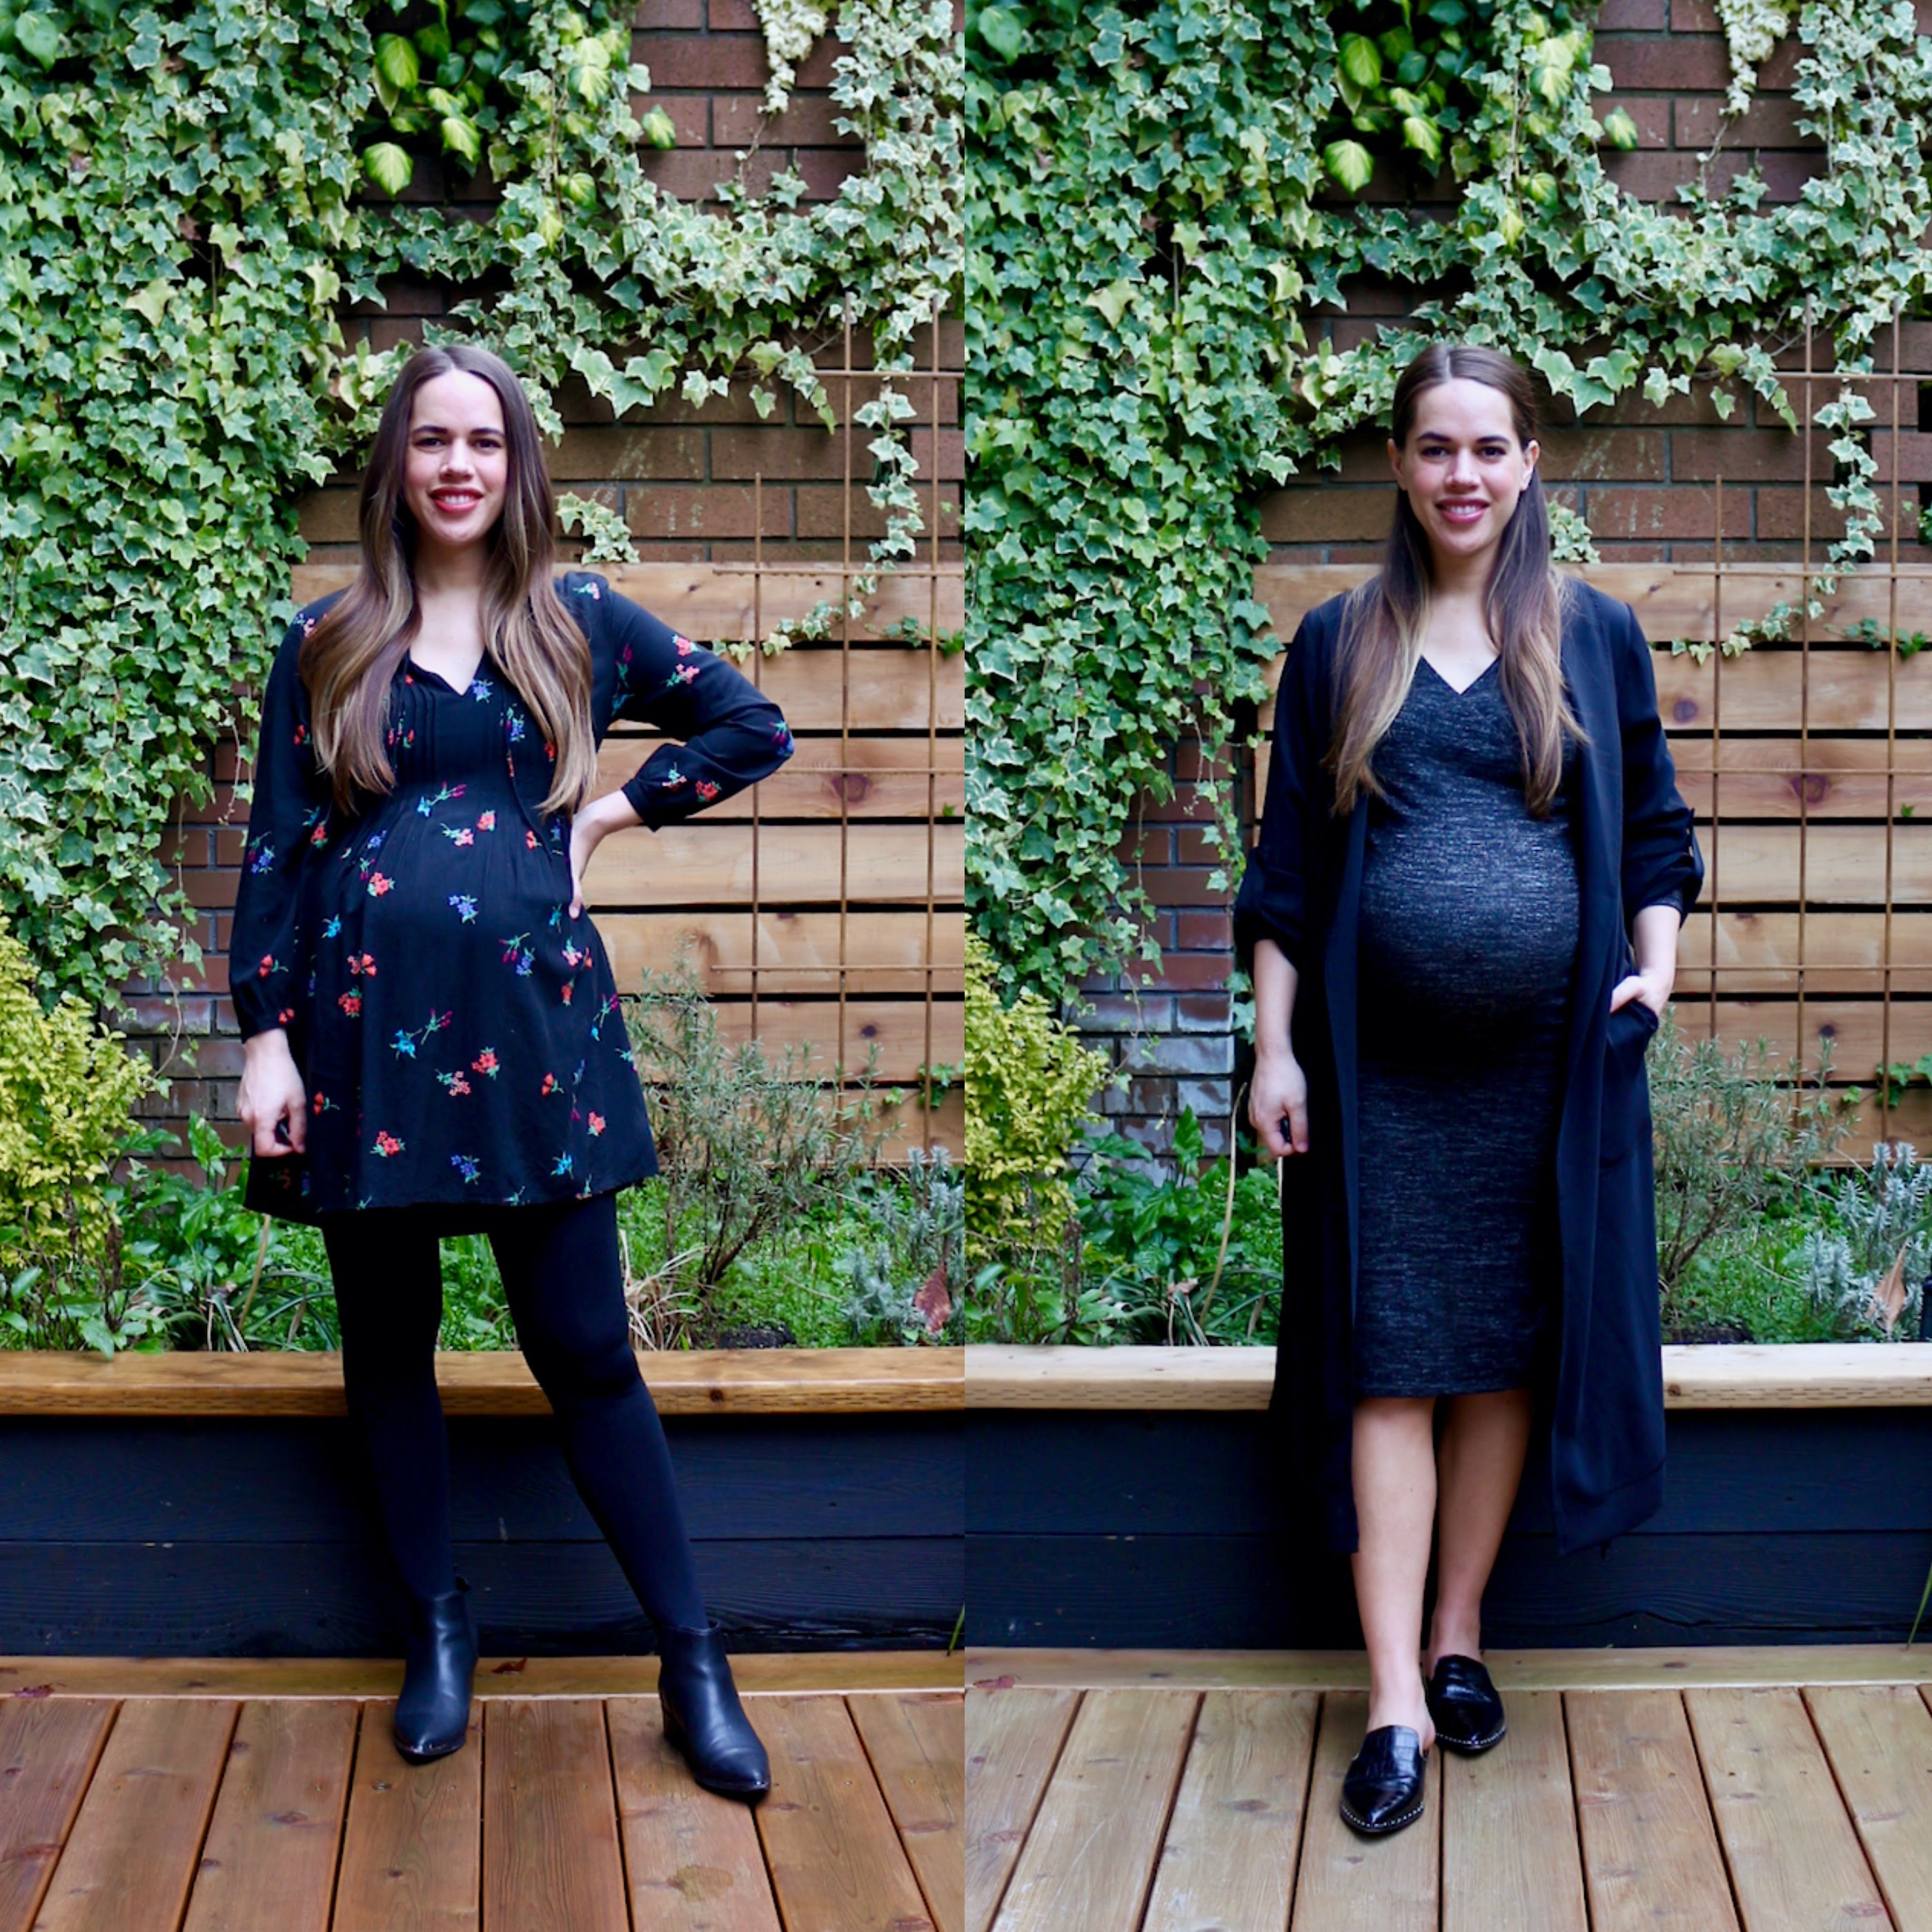 Jules in Flats - What I Wore to Work in March (Business Casual Workwear on a Budget) Week 4